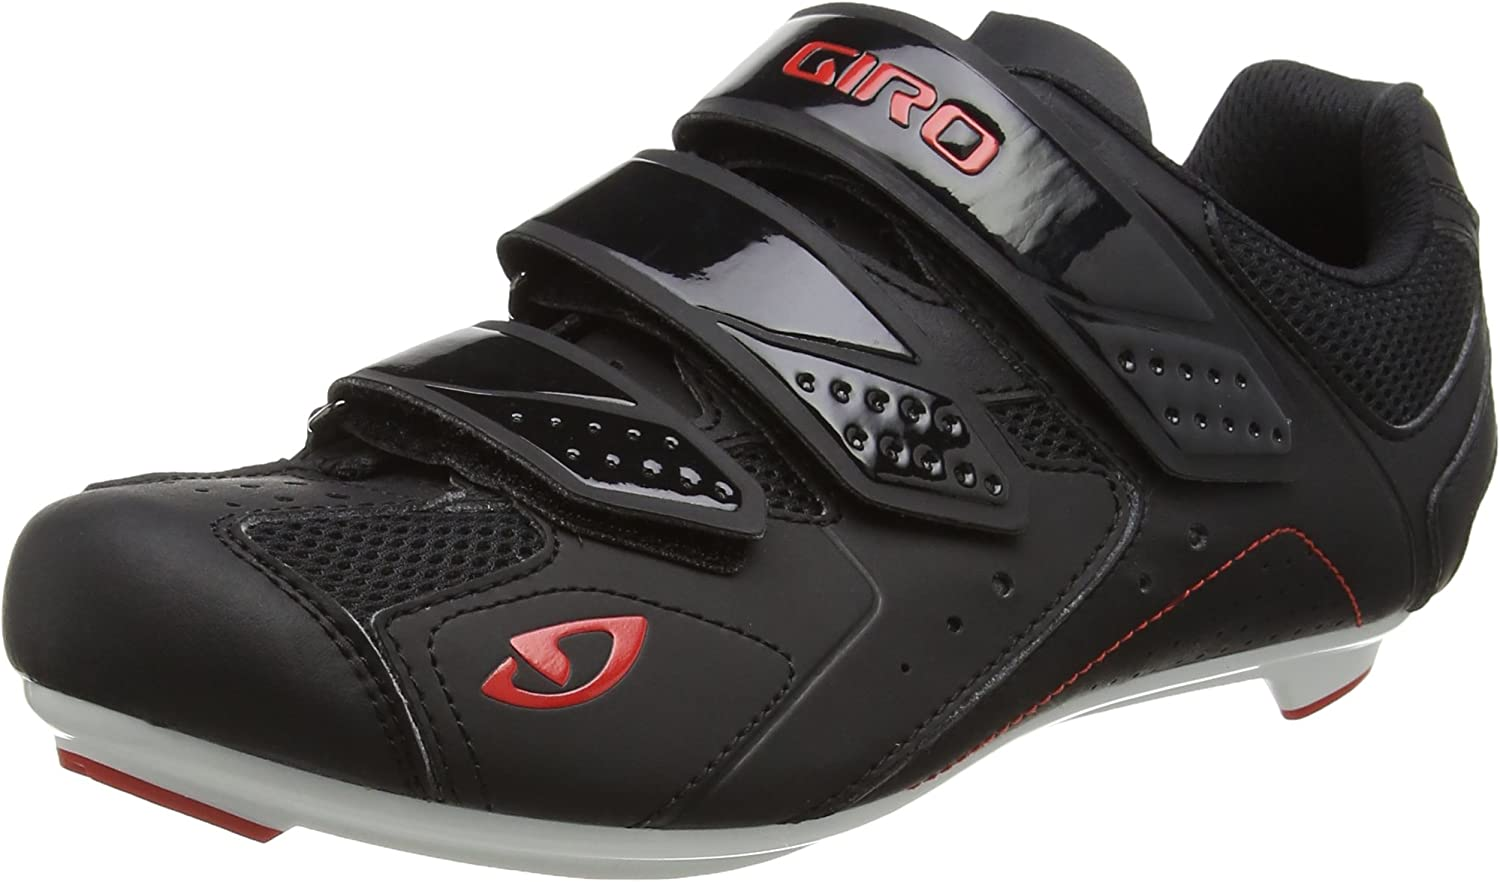 Giro Men's Treble shoes - Black, 40 Inch